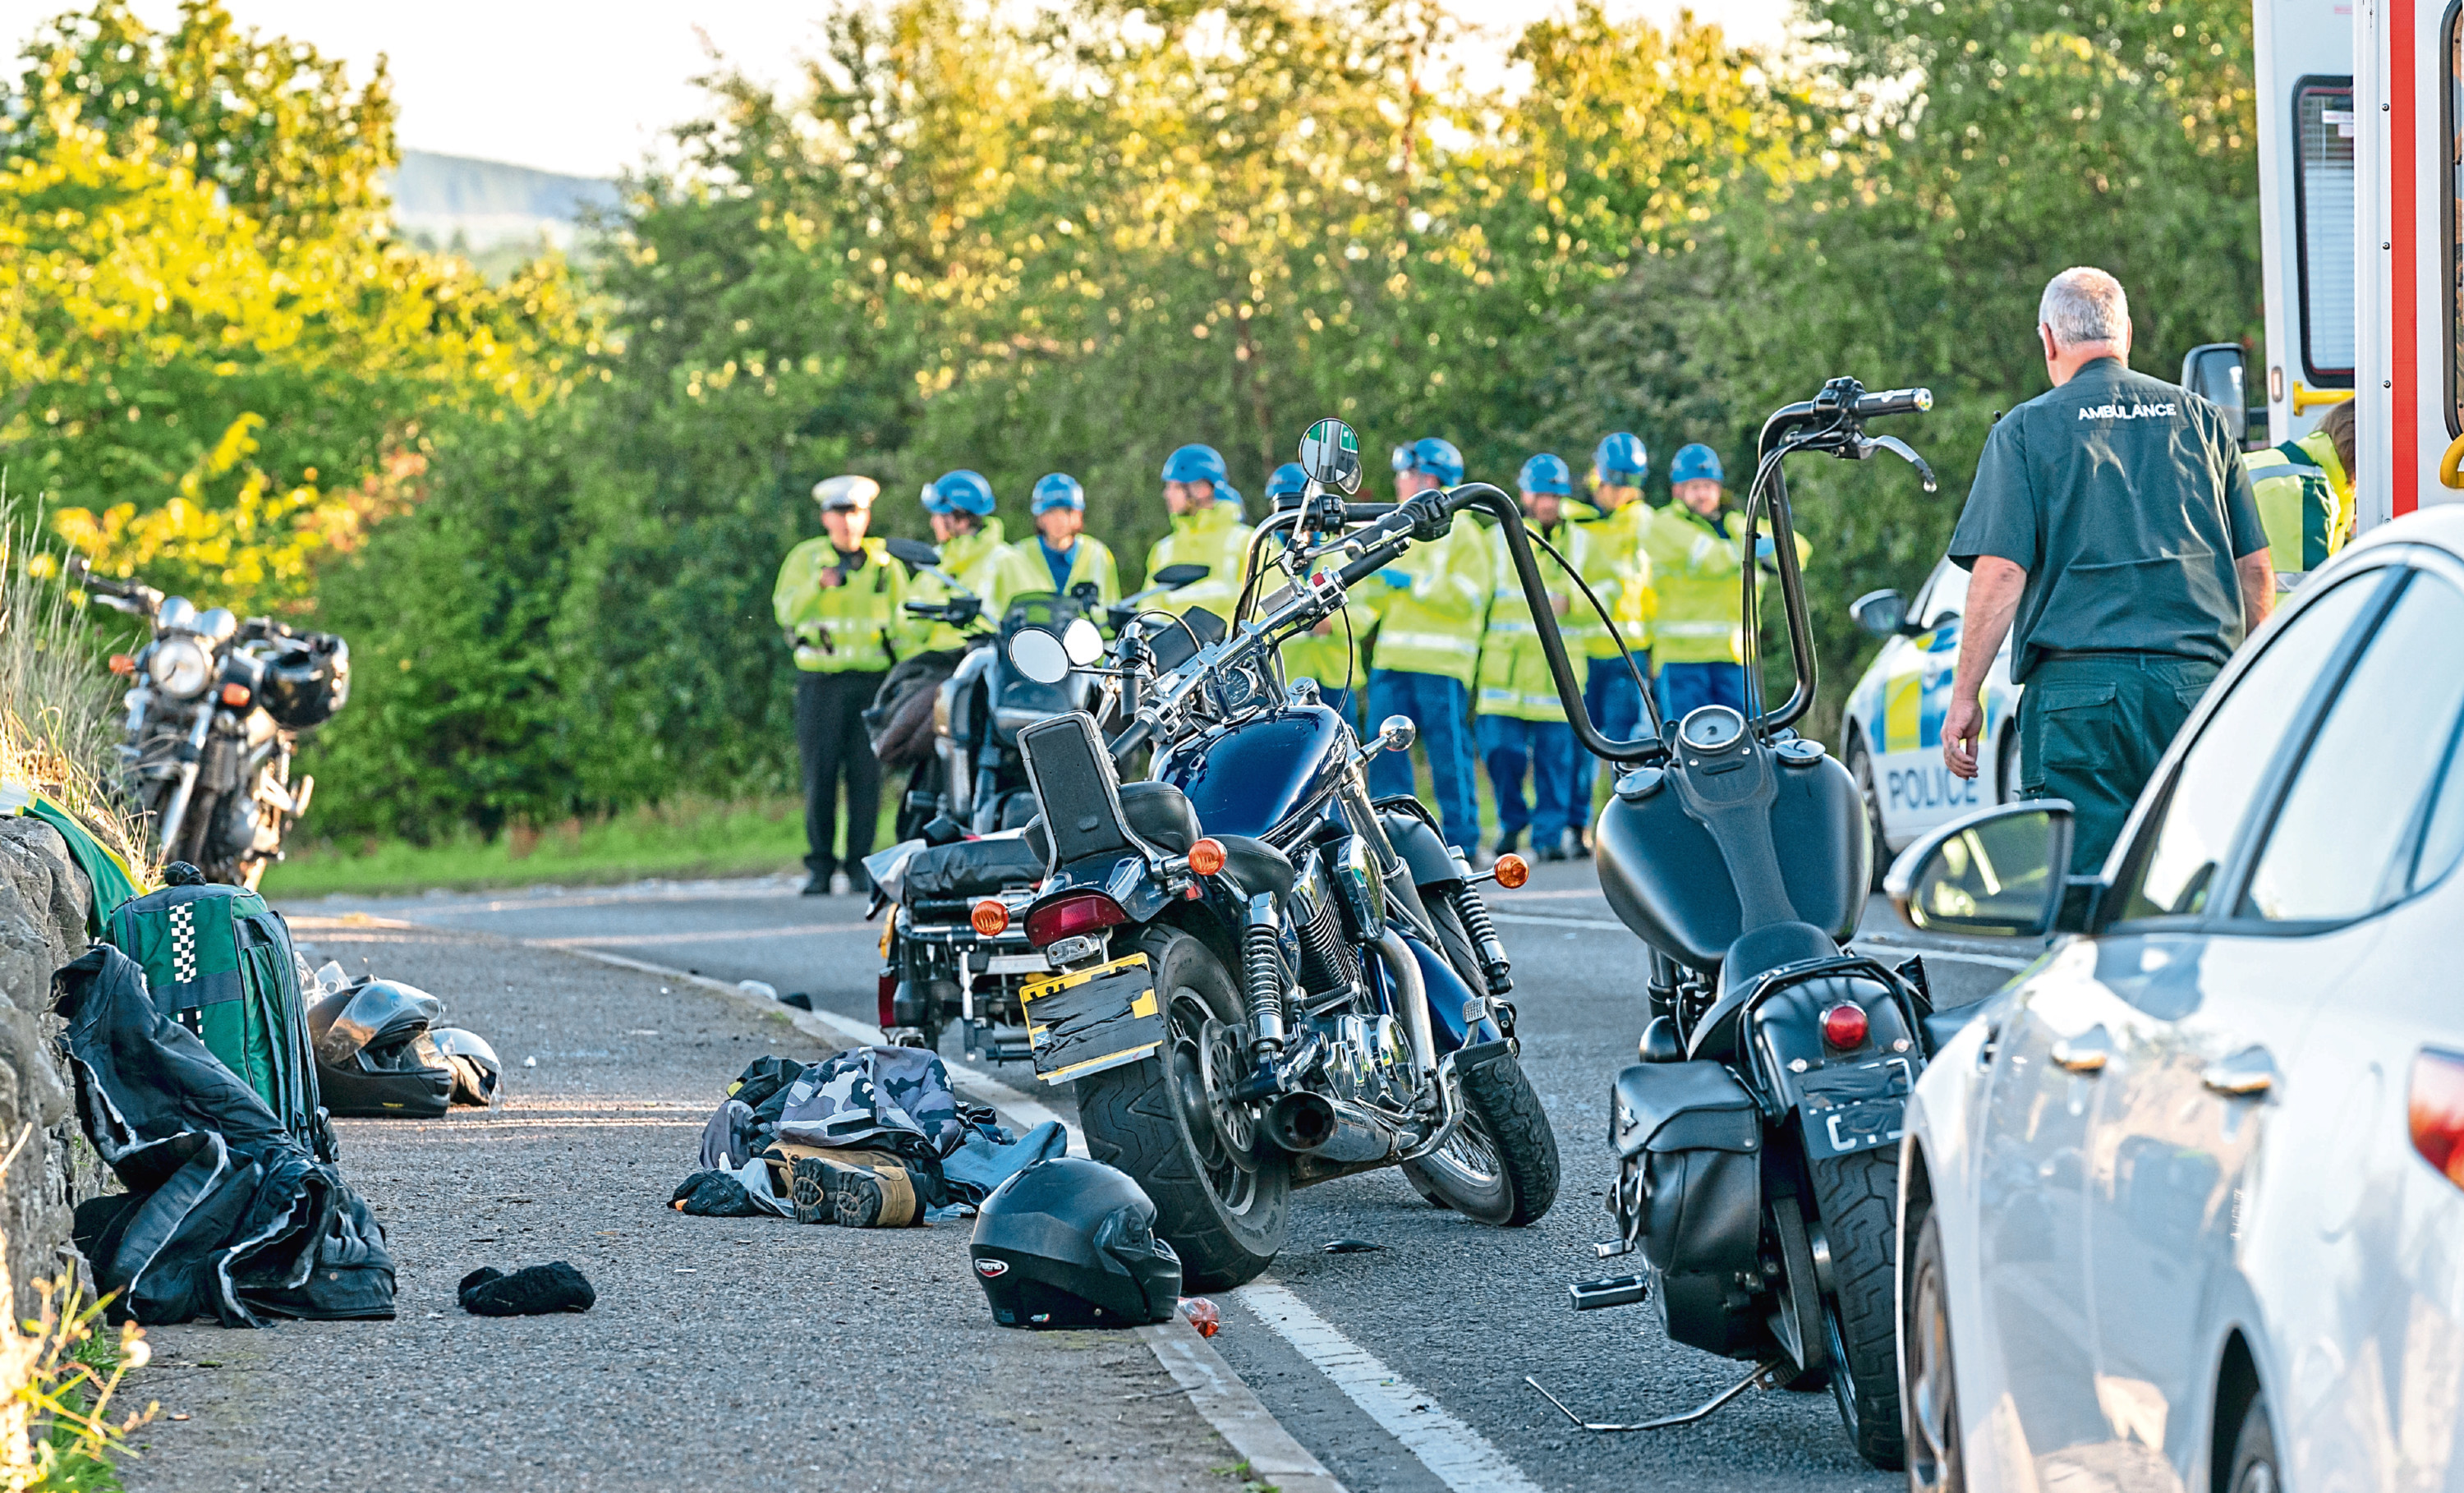 The scene of the crash on the A98